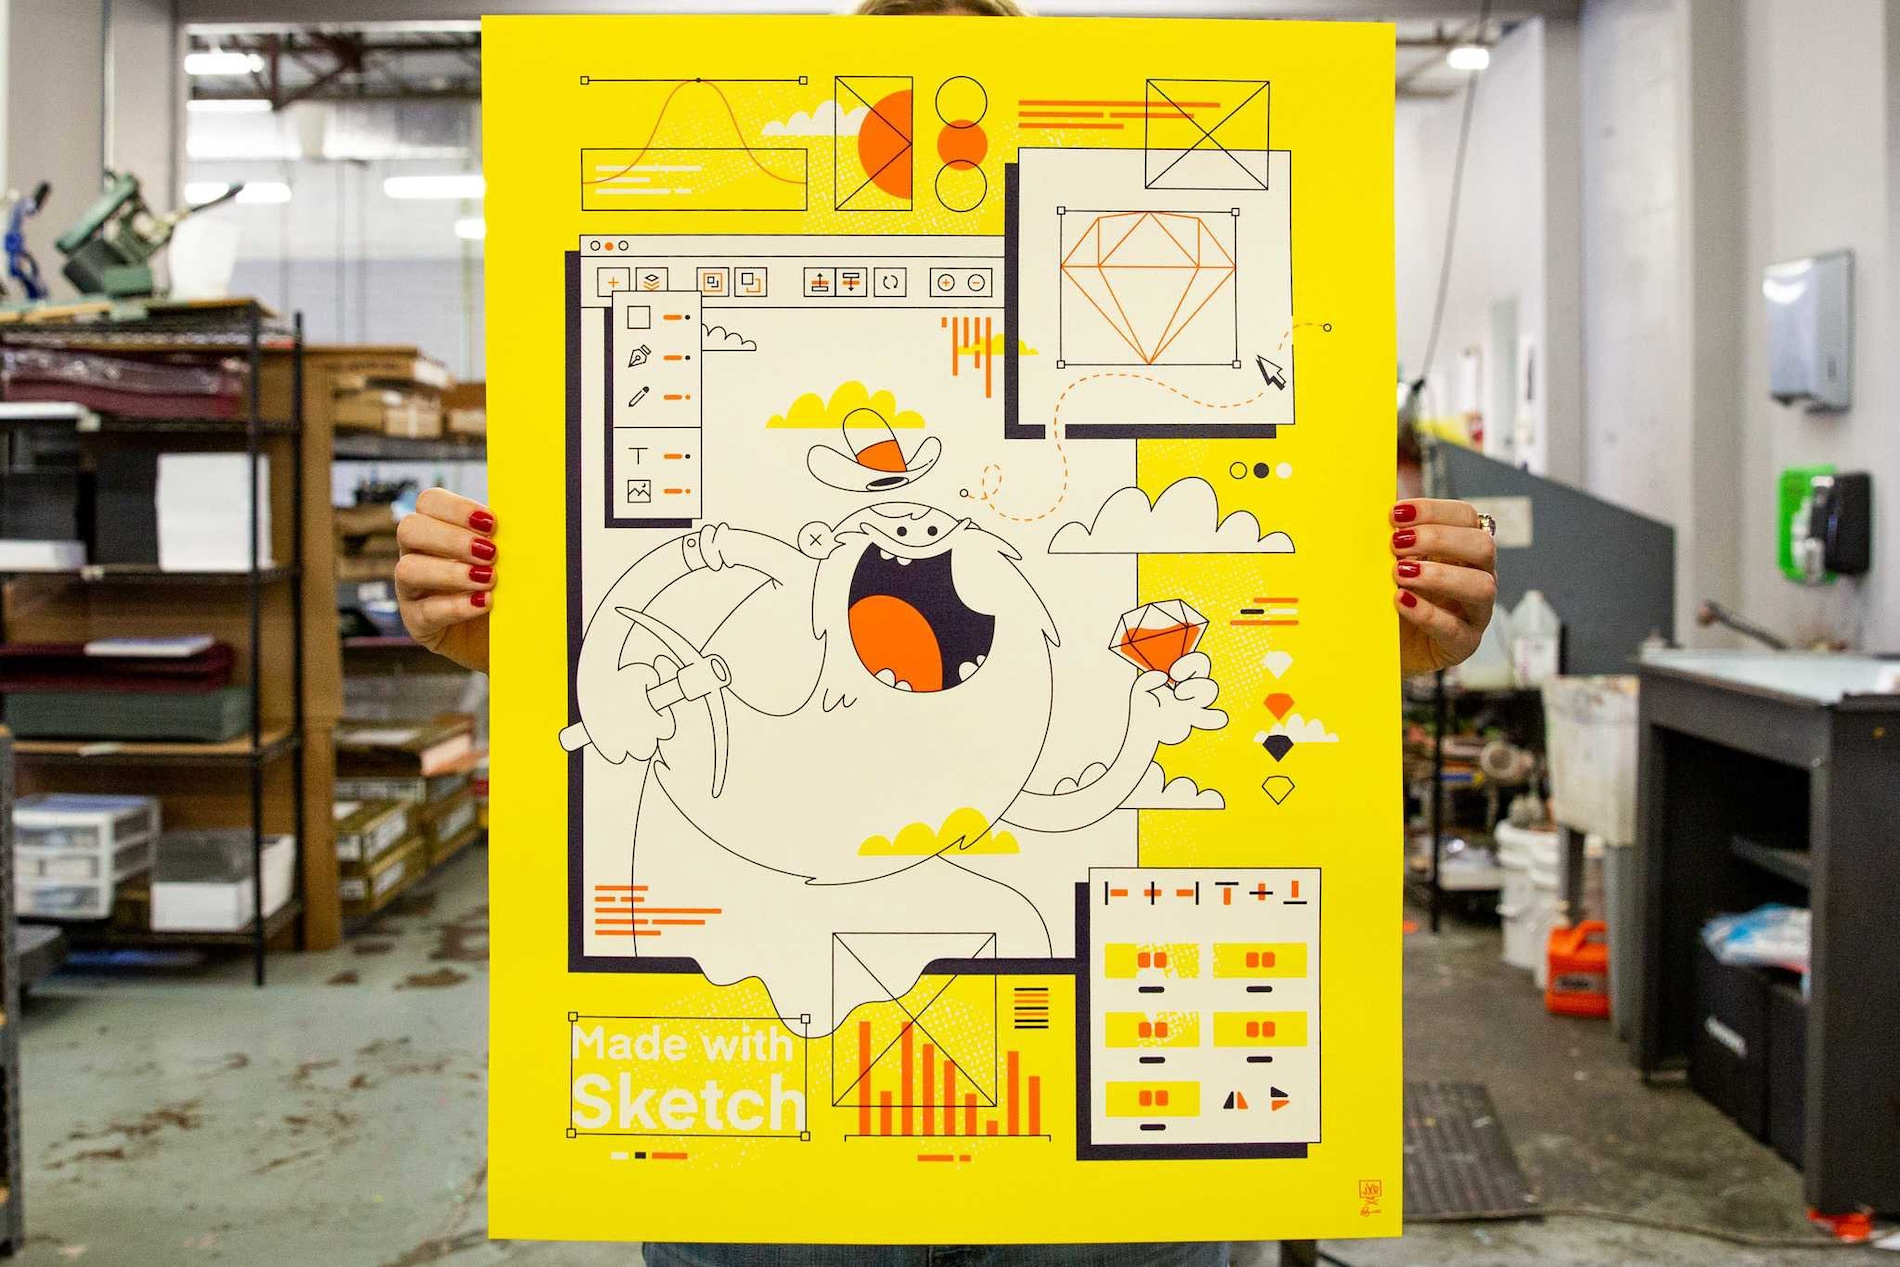 A woman holds up an art print commissioned by Sketch inside a printing studio